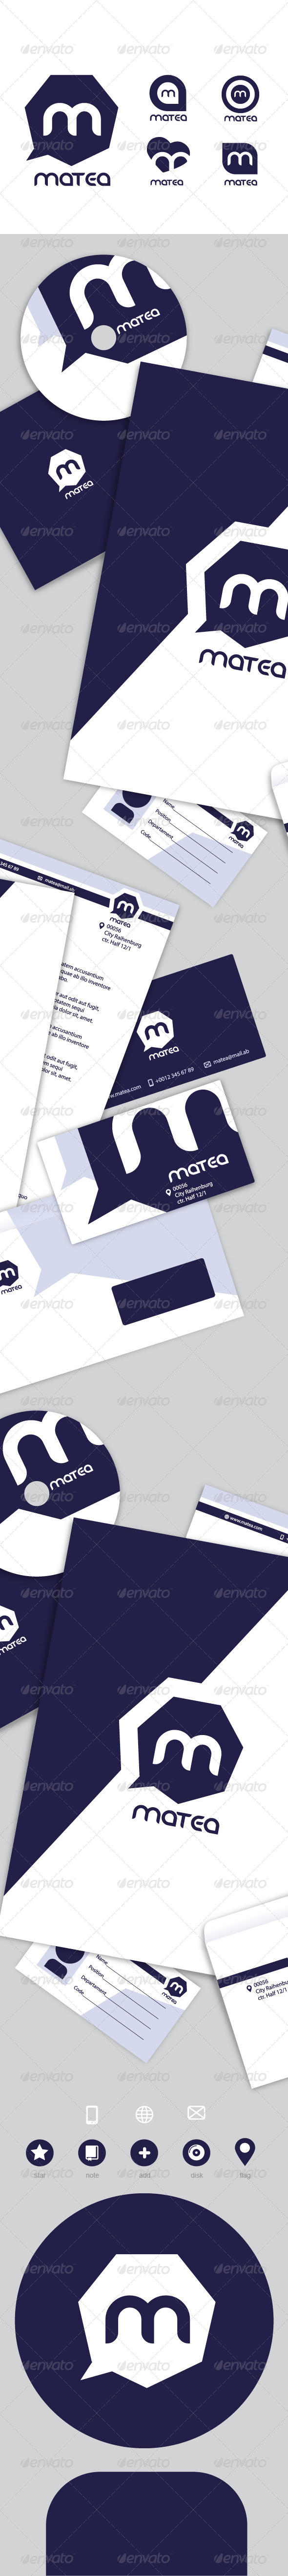 Matea Stationary Pack - Stationery Print Templates